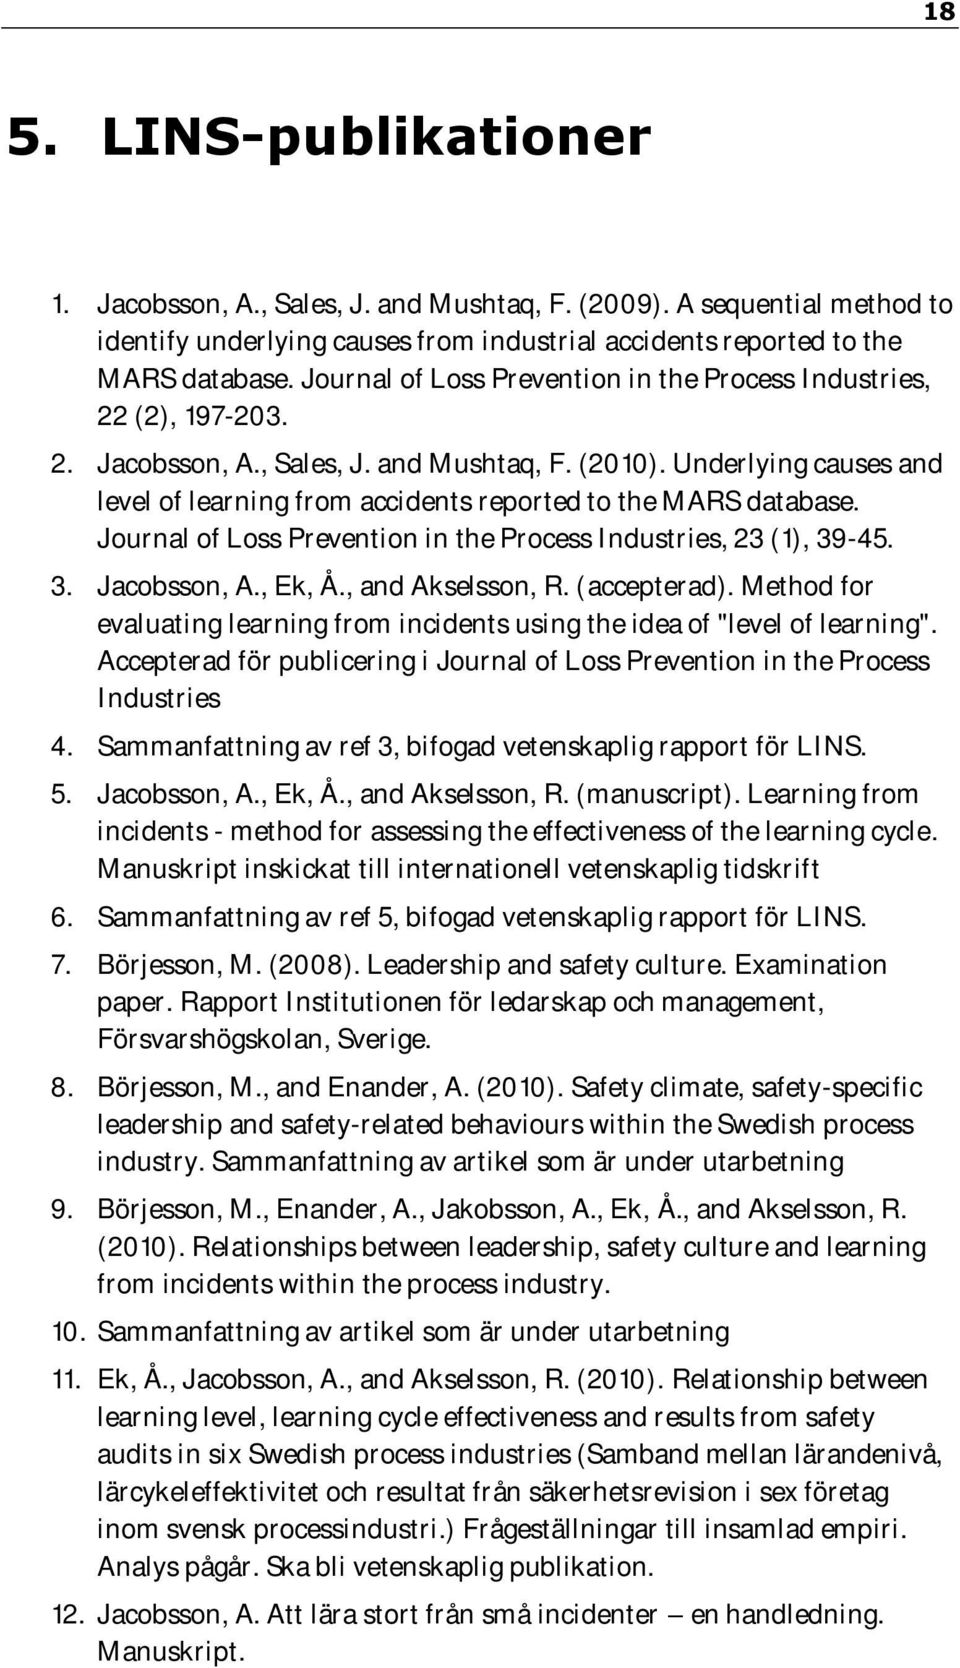 Underlying causes and level of learning from accidents reported to the MARS database. Journal of Loss Prevention in the Process Industries, 23 (1), 39-45. 3. Jacobsson, A., Ek, Å., and Akselsson, R.